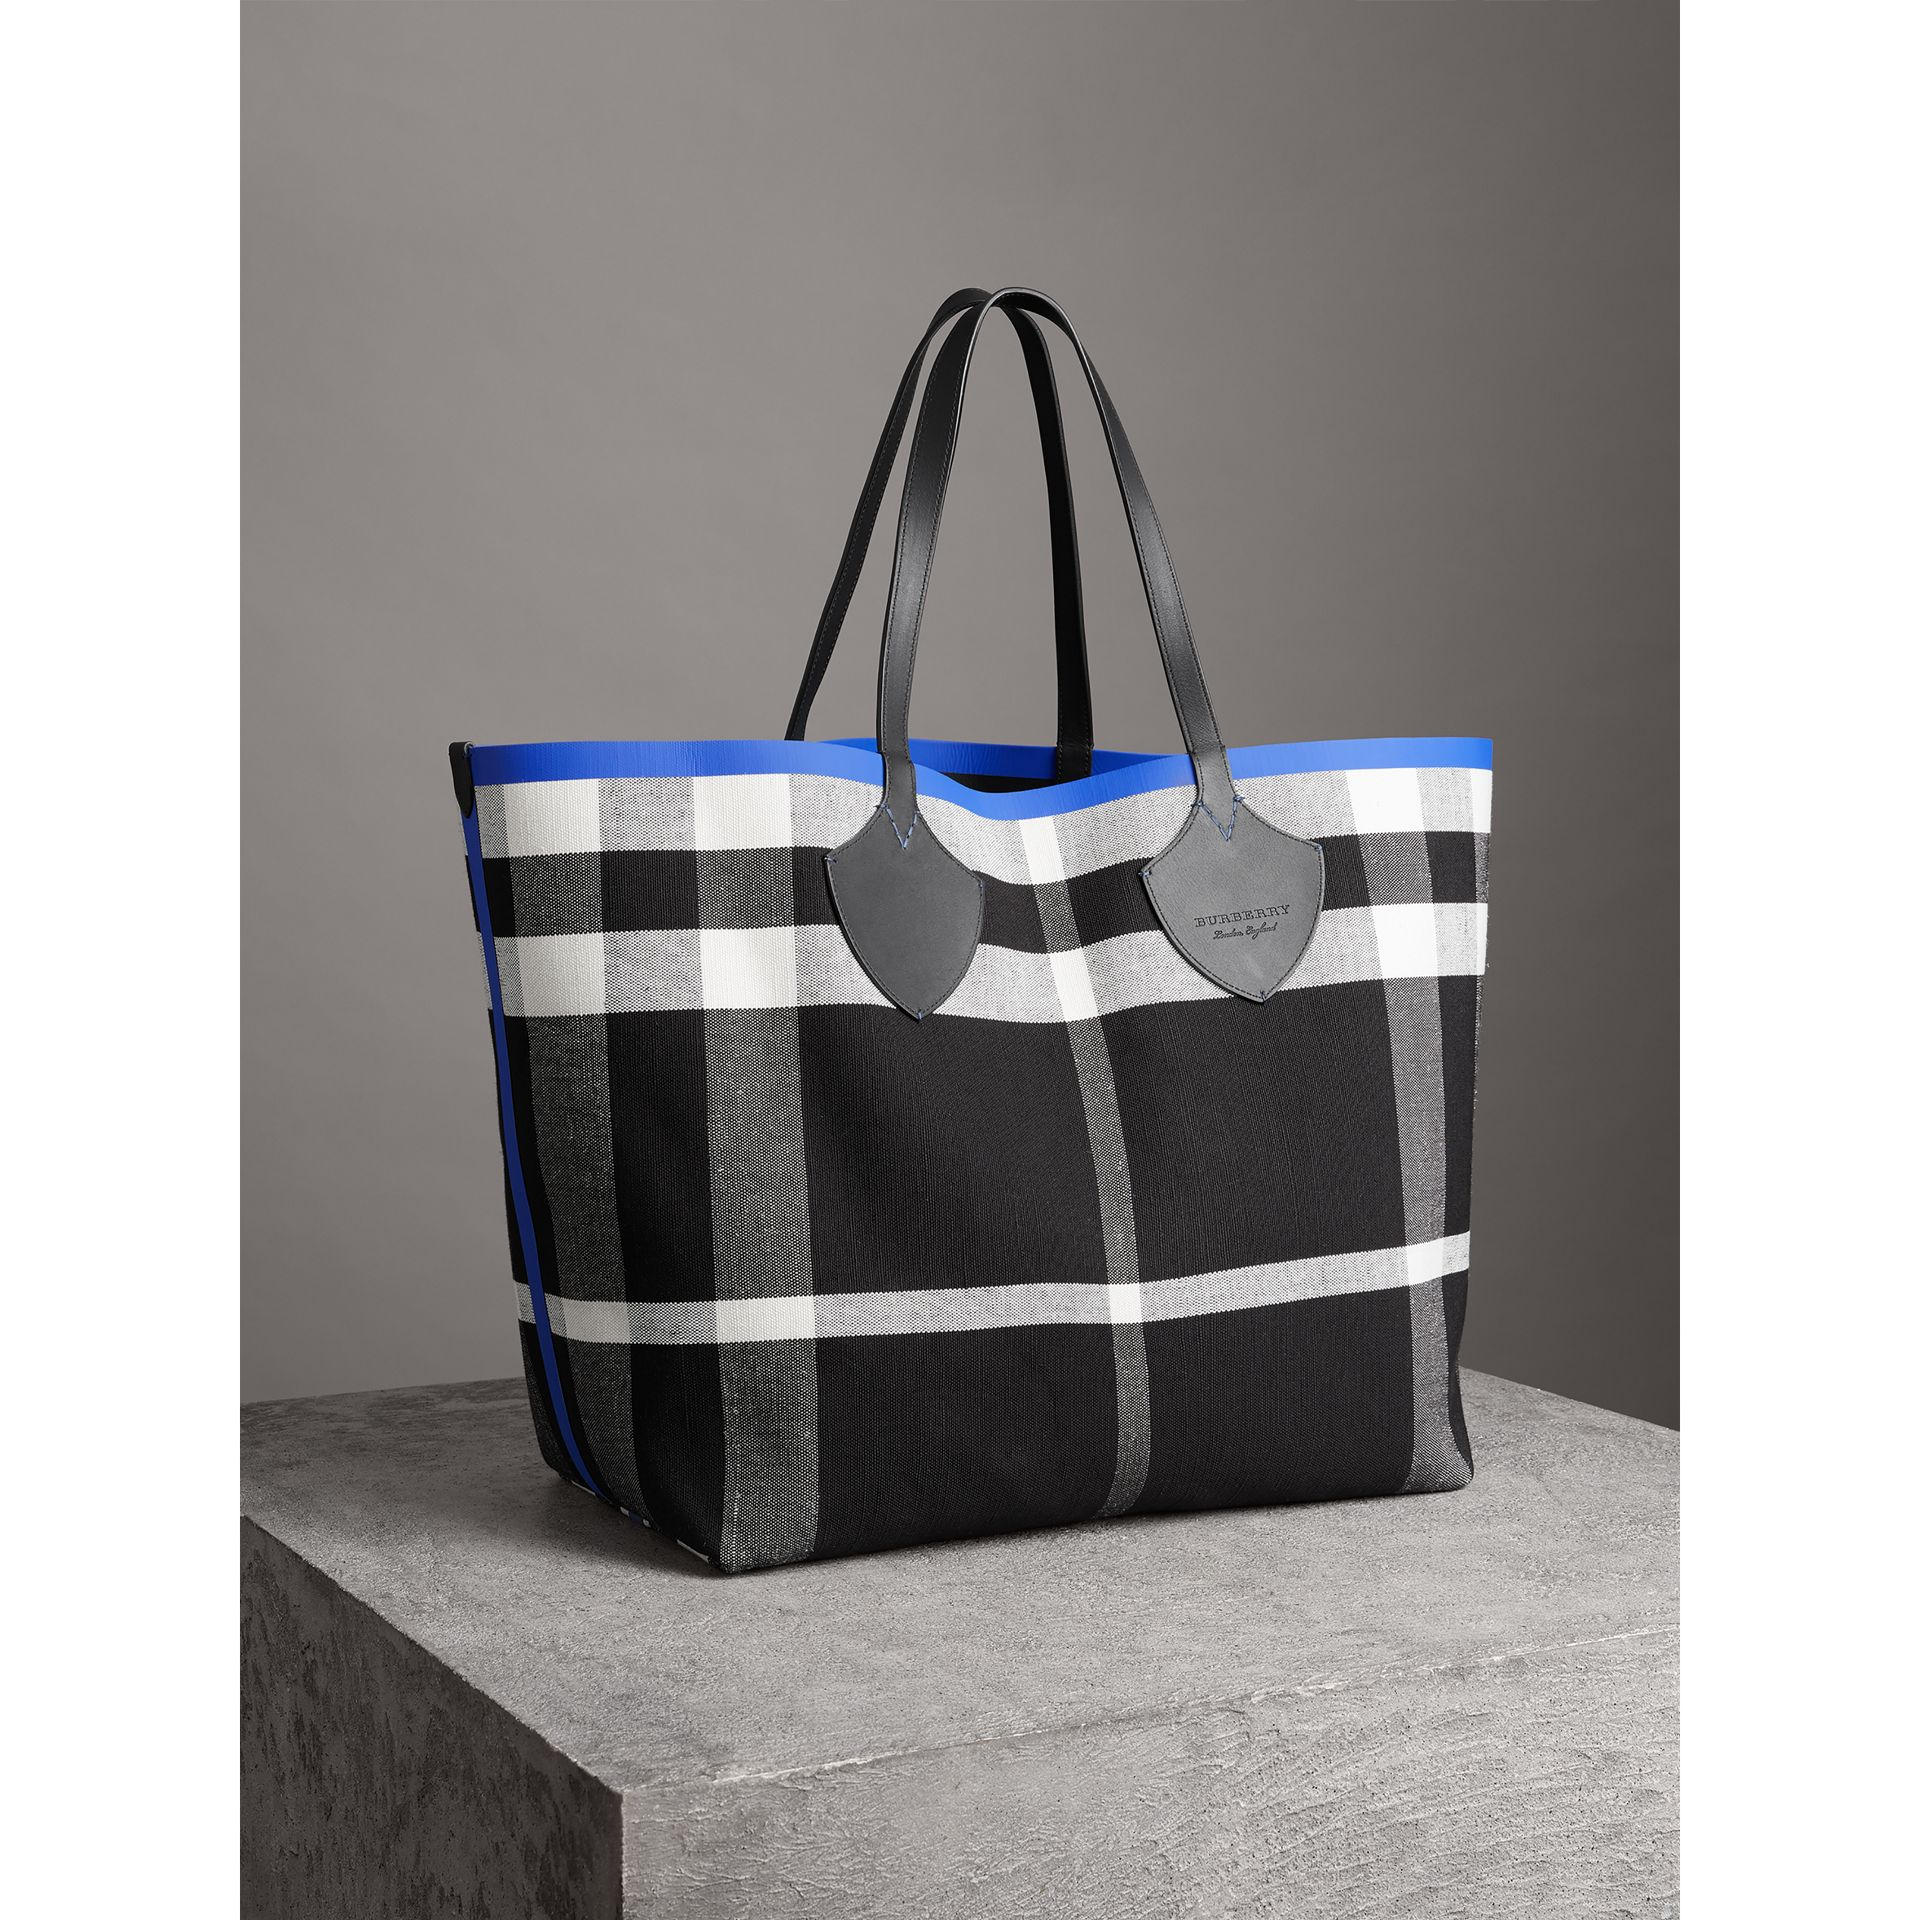 Borsa tote The Giant reversibile in cotone con motivo Canvas check e pelle (Mirtillo/nero) | Burberry - immagine della galleria 4